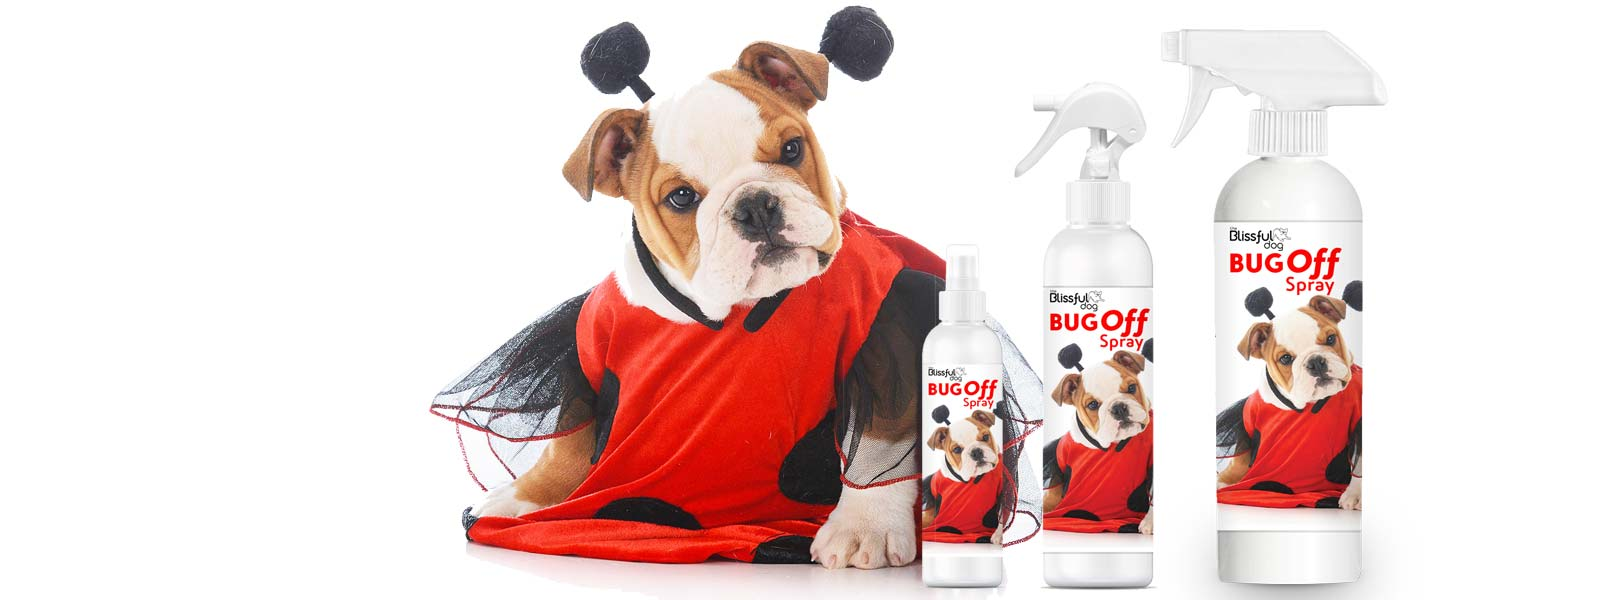 Bulldog bug spray all natural